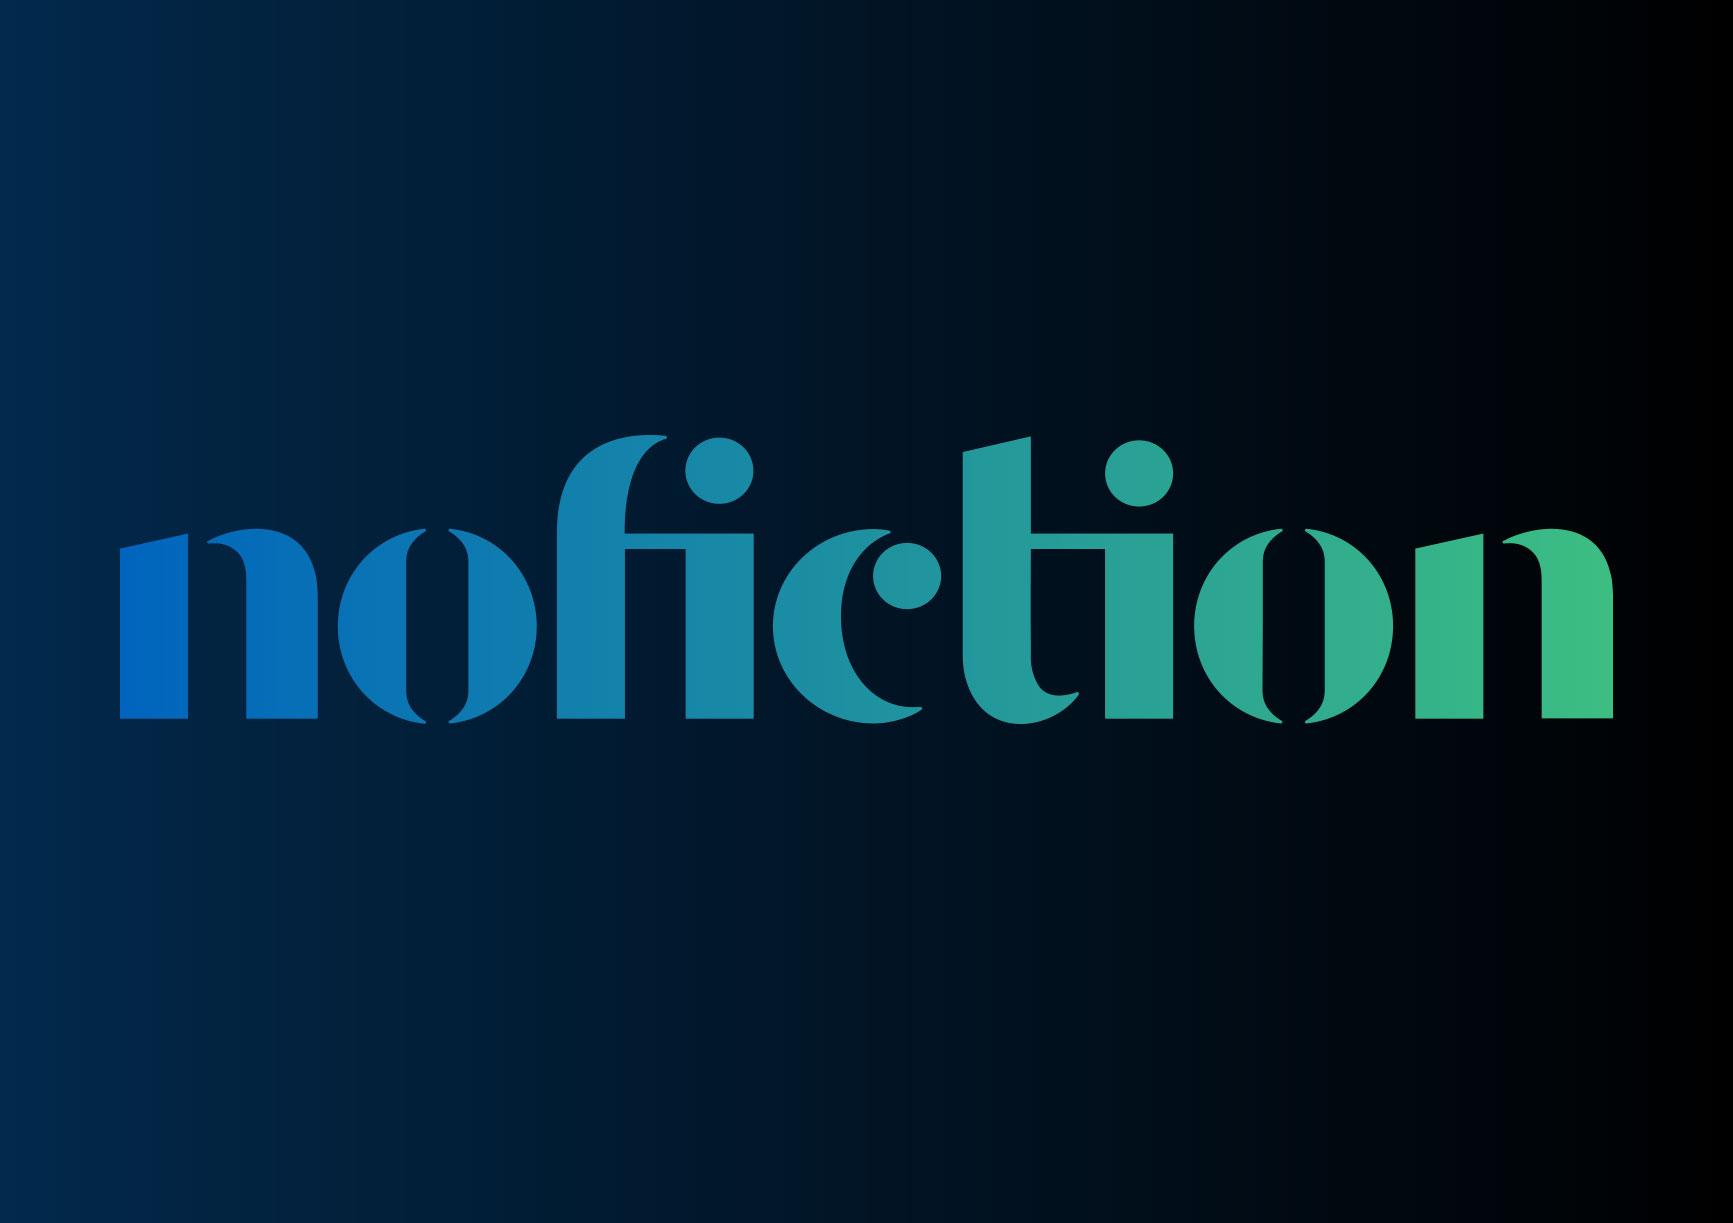 NoFiction master logo design